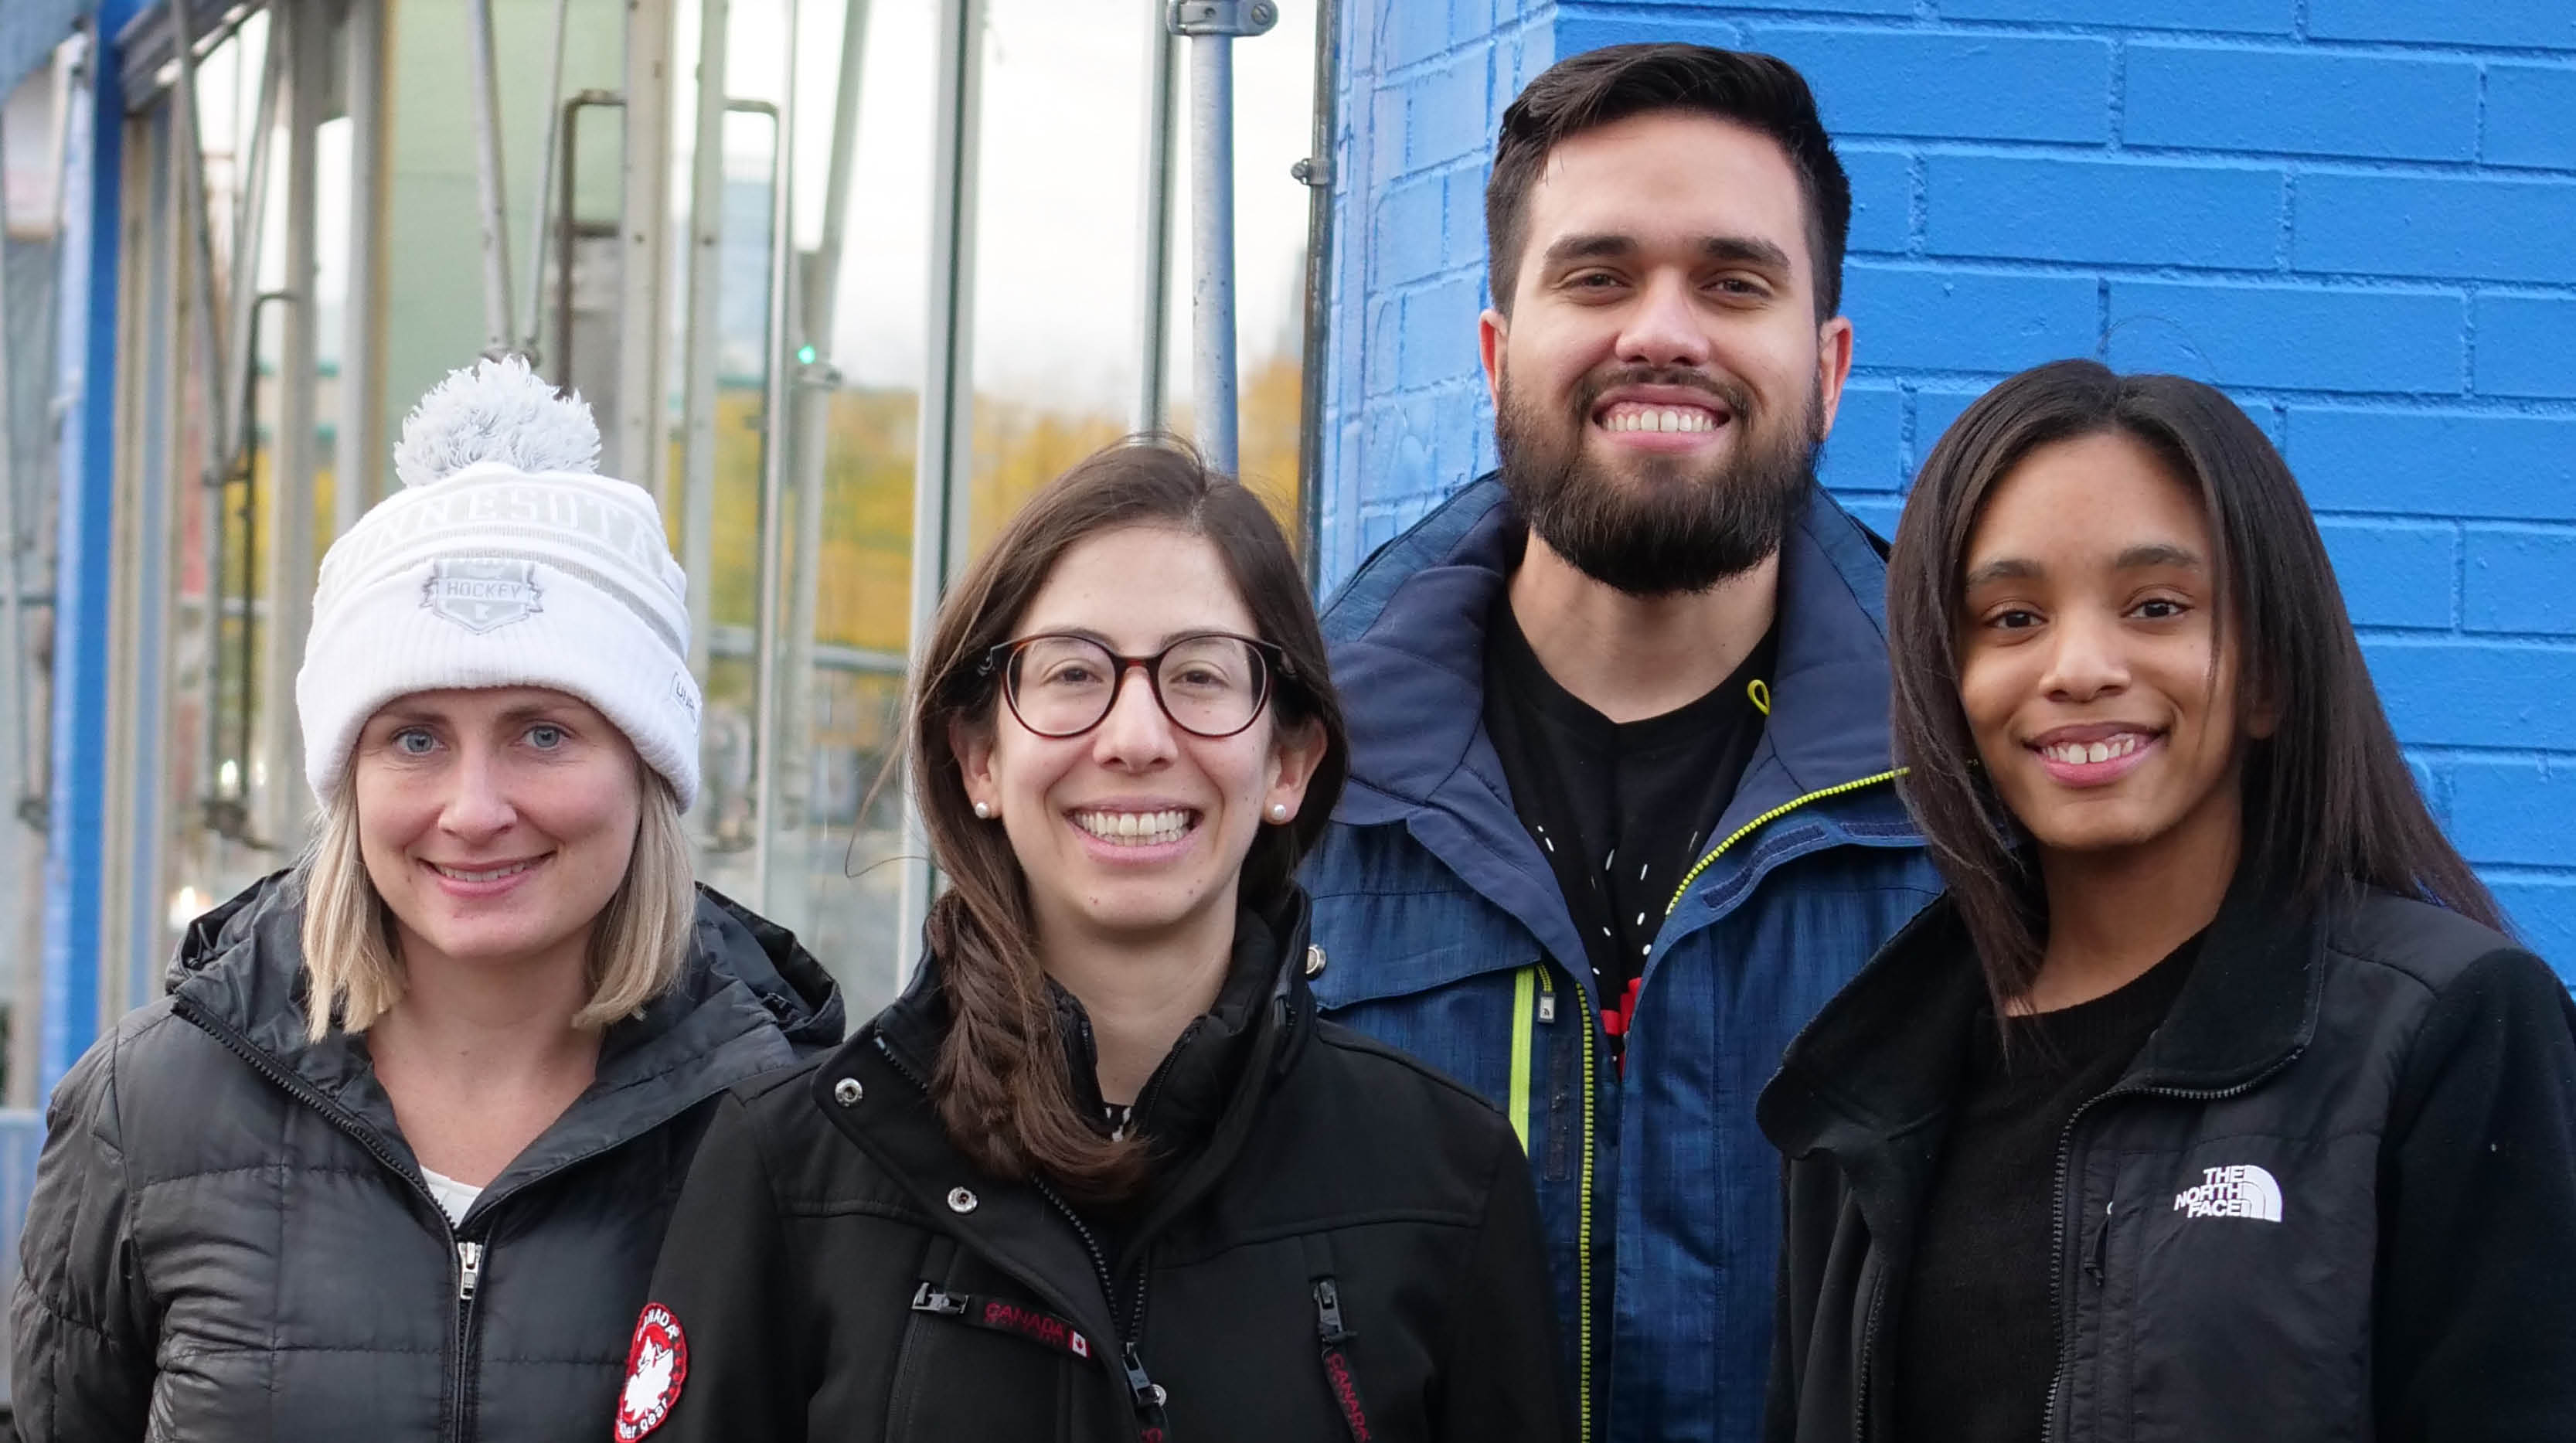 Laundry Love participants at Chicago Coin Laundry